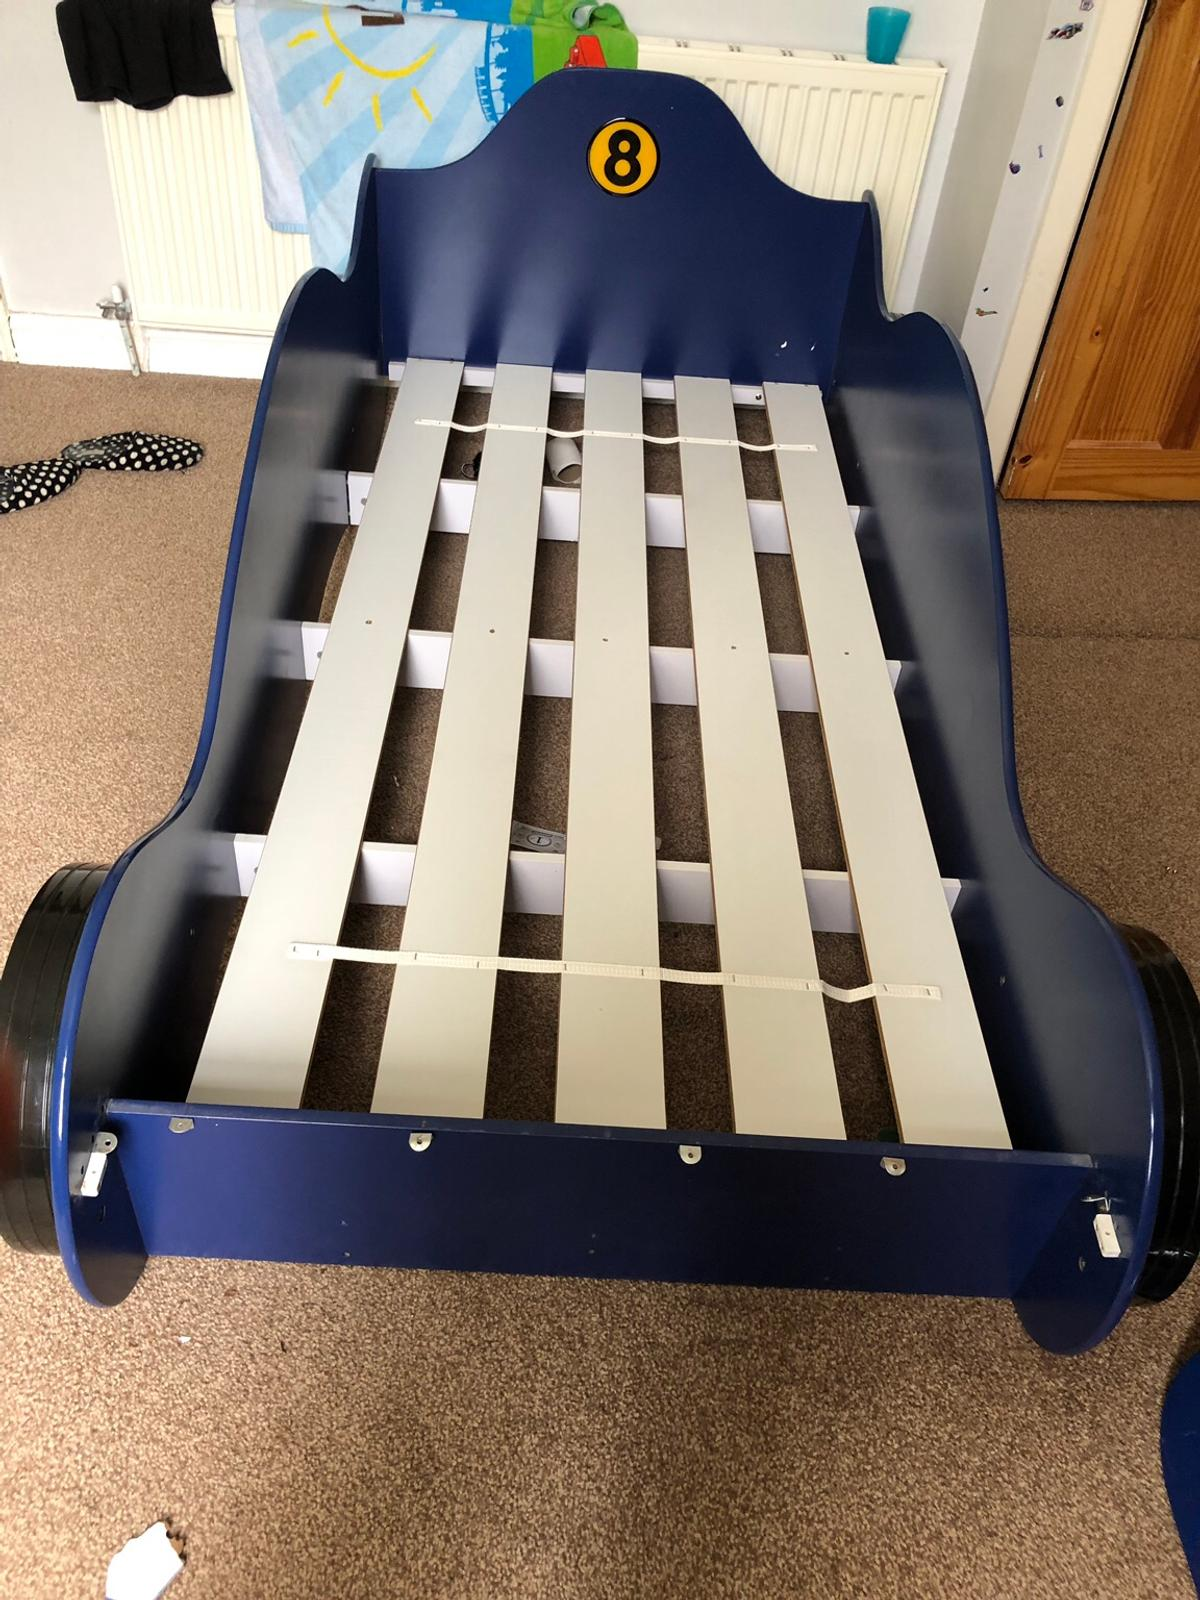 A boys single car bed, been used but well looked aftered and maintain, comes from a loving home